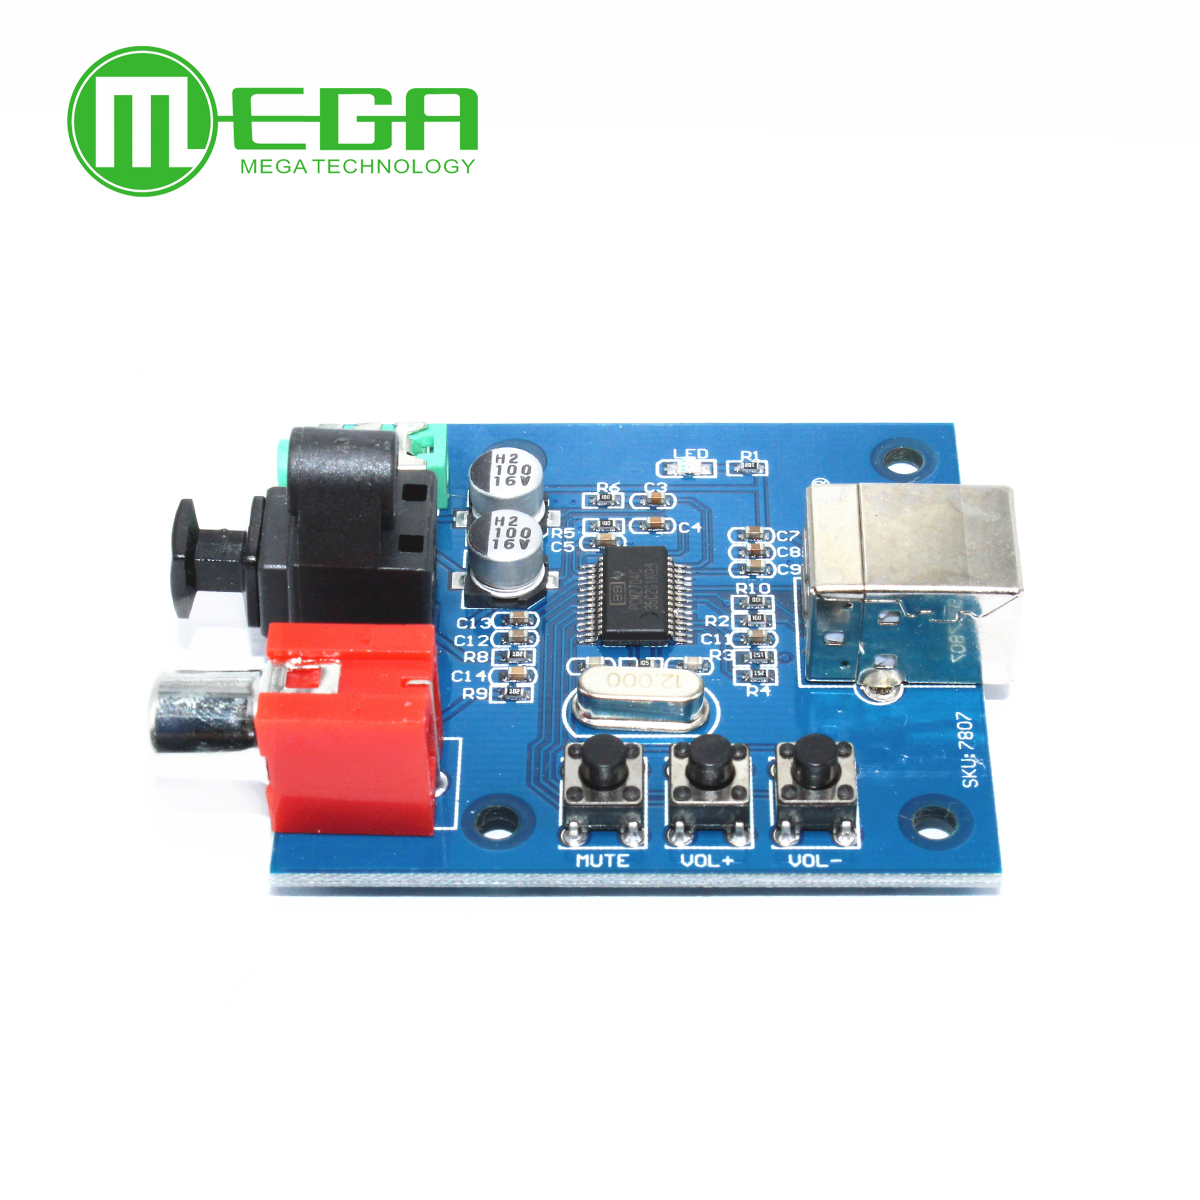 Pcm2704 Usb Dac Power Fiber Optic Coaxial Analog Output Optics Integrated Circuits Images Of Raspberry Pi Raspbian Raspbmc Windows 7 Need No Driver In From Electronic